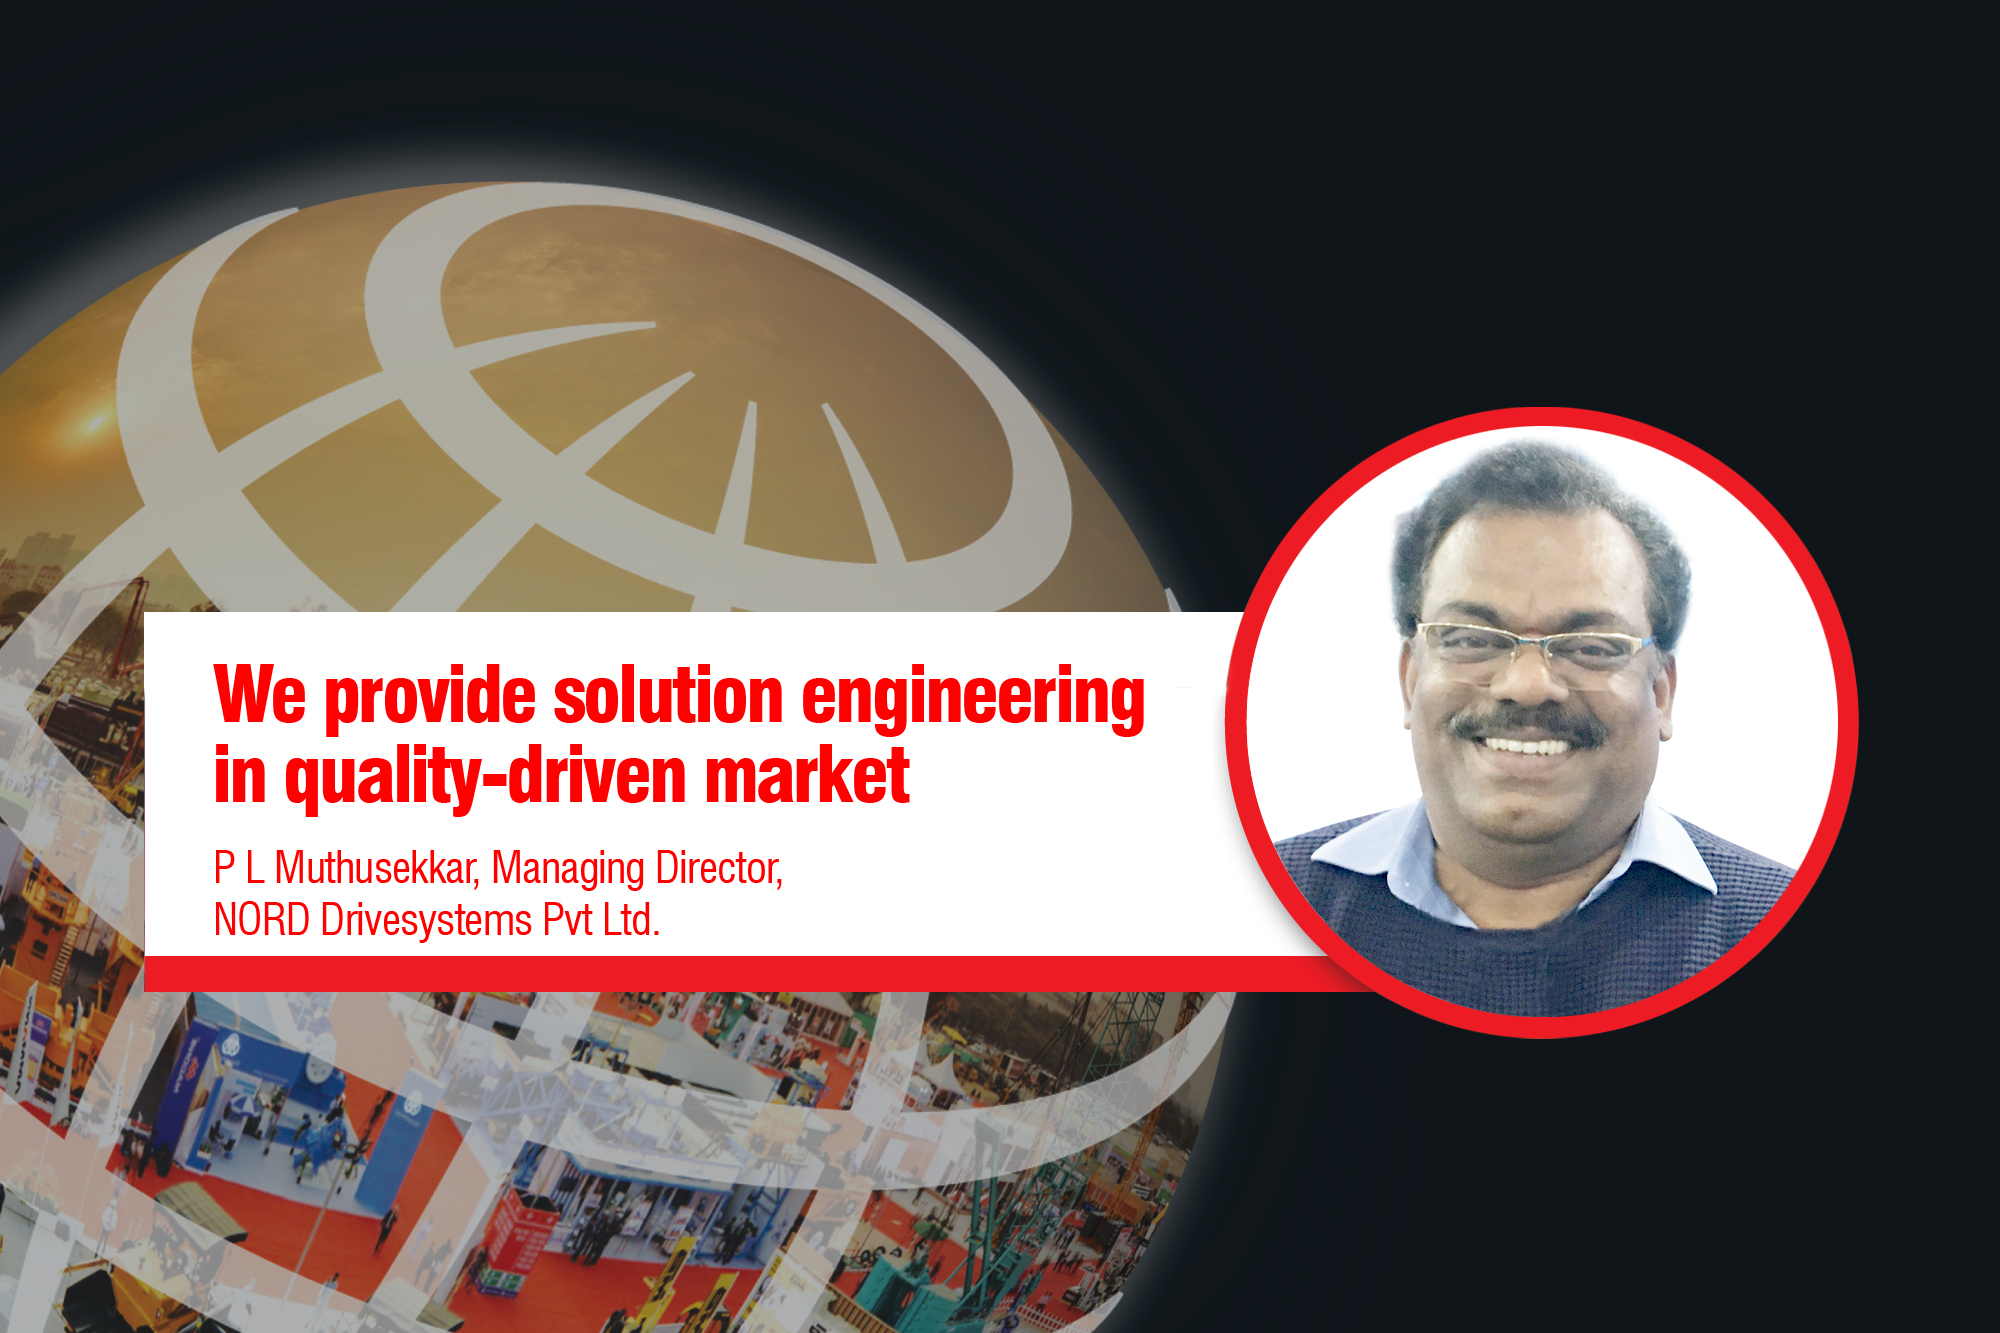 We provide solution engineering in quality-driven market